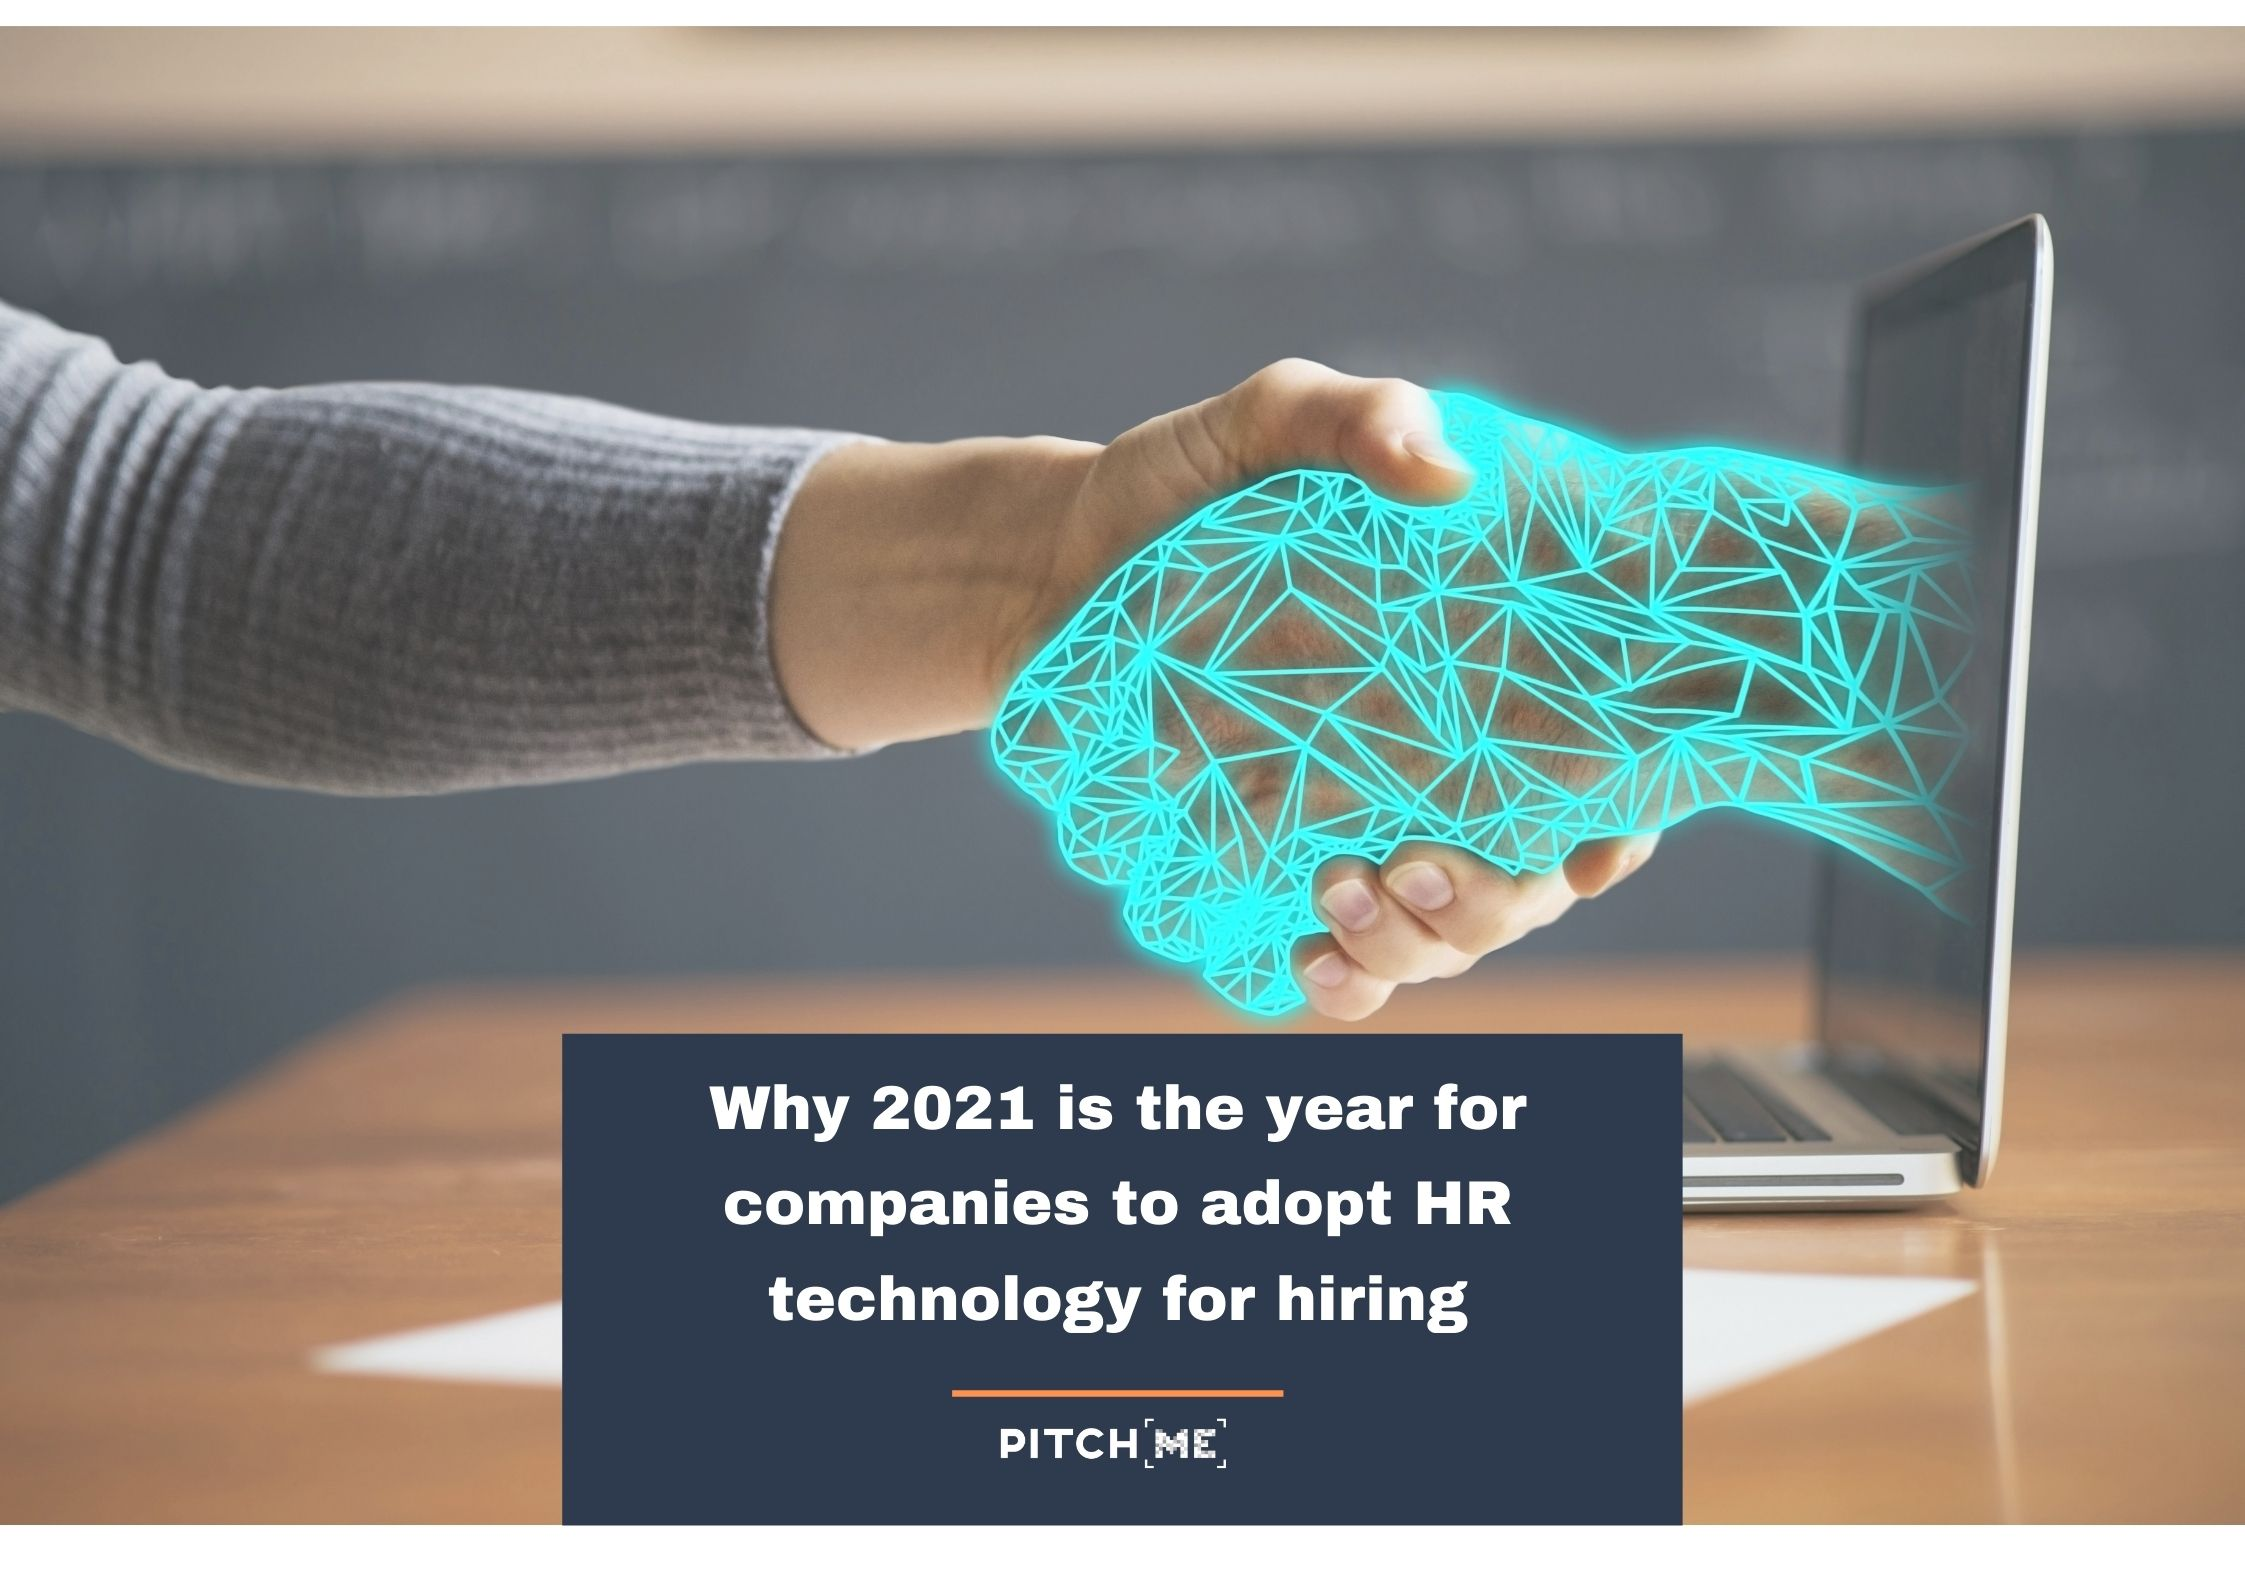 HR technology in 2021